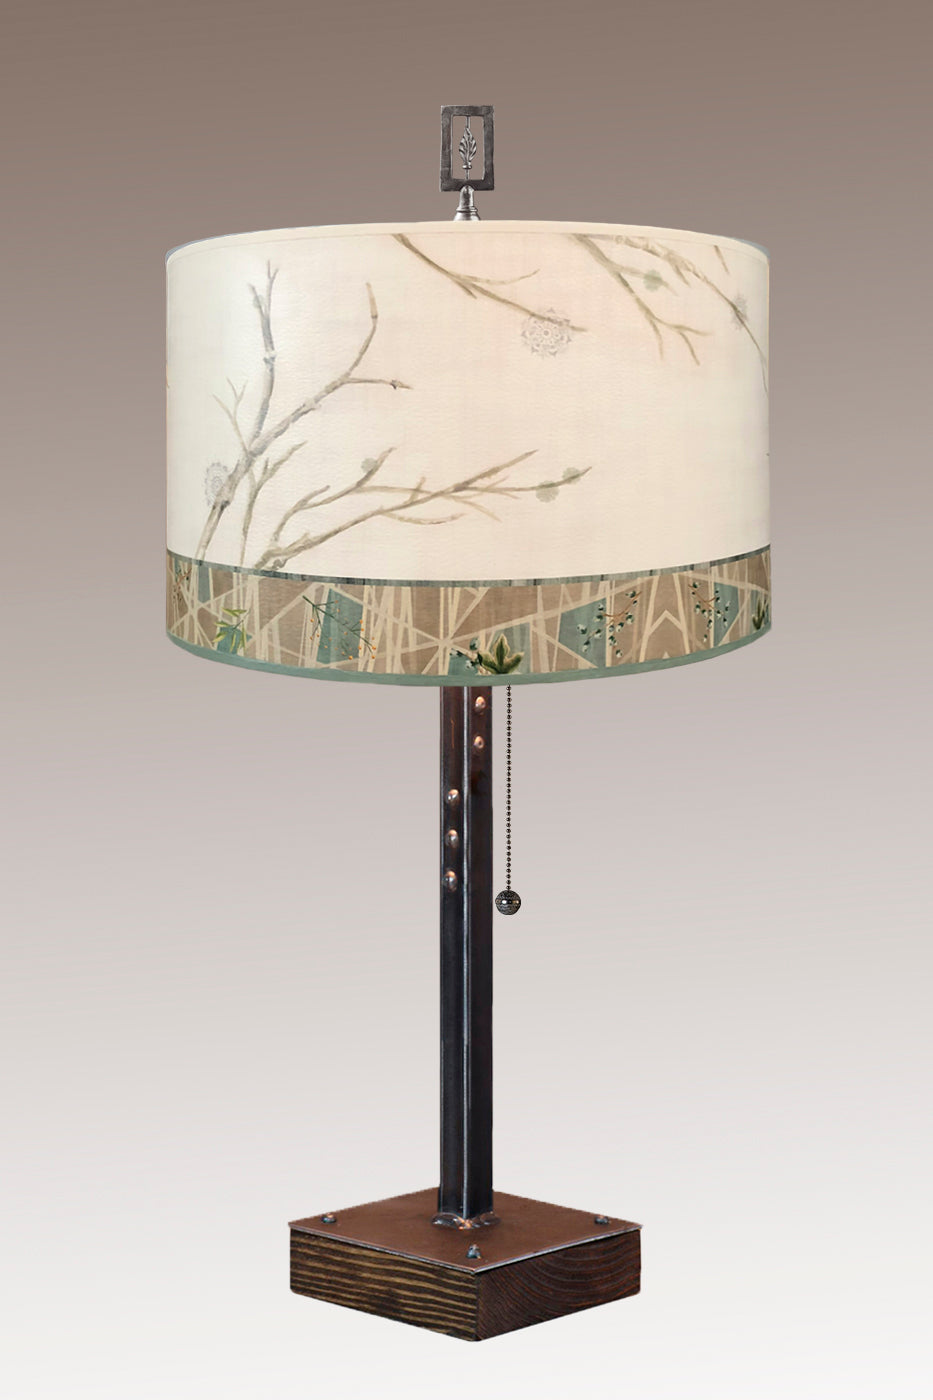 Steel Table Lamp on Wood with Large Drum Shade in Prism Branch